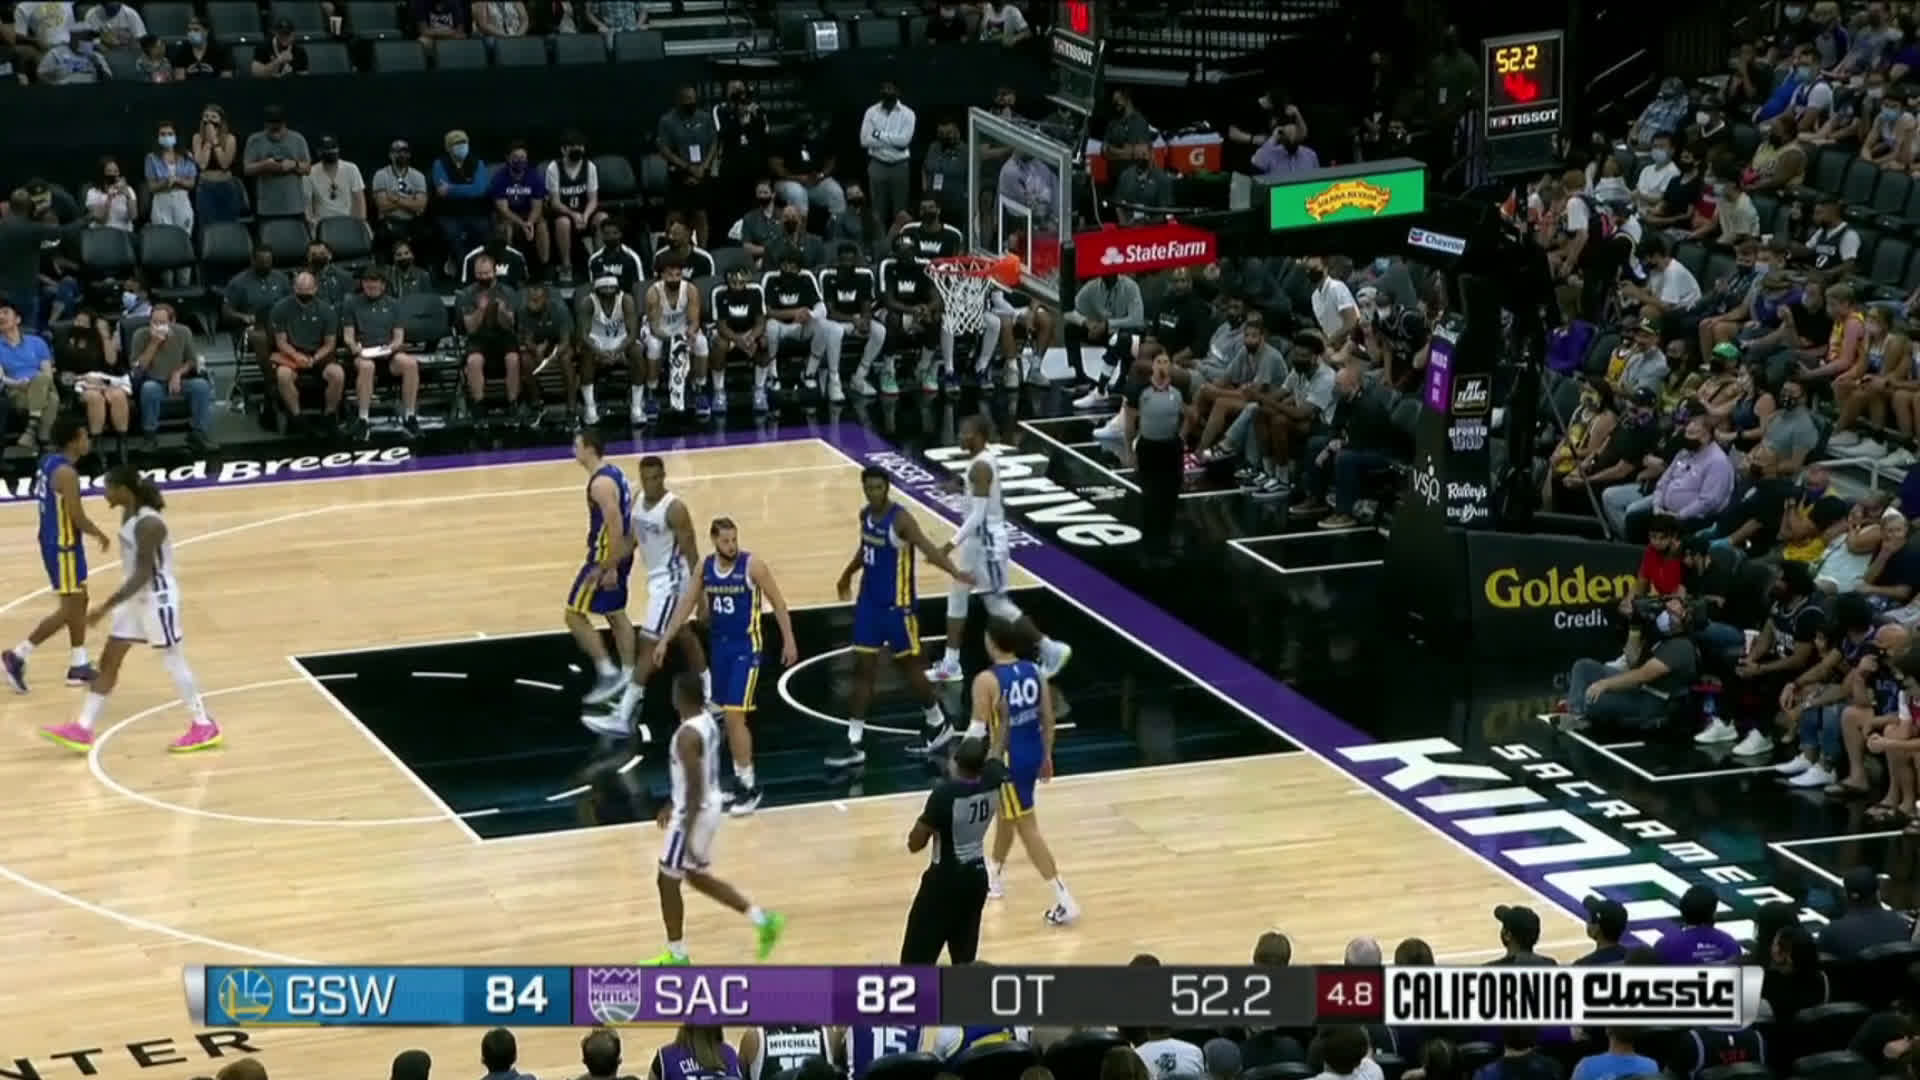 [Highlight] Summer League Kings guard Matt Coleman hits the side of the State Farm logo on a three point attempt in overtime